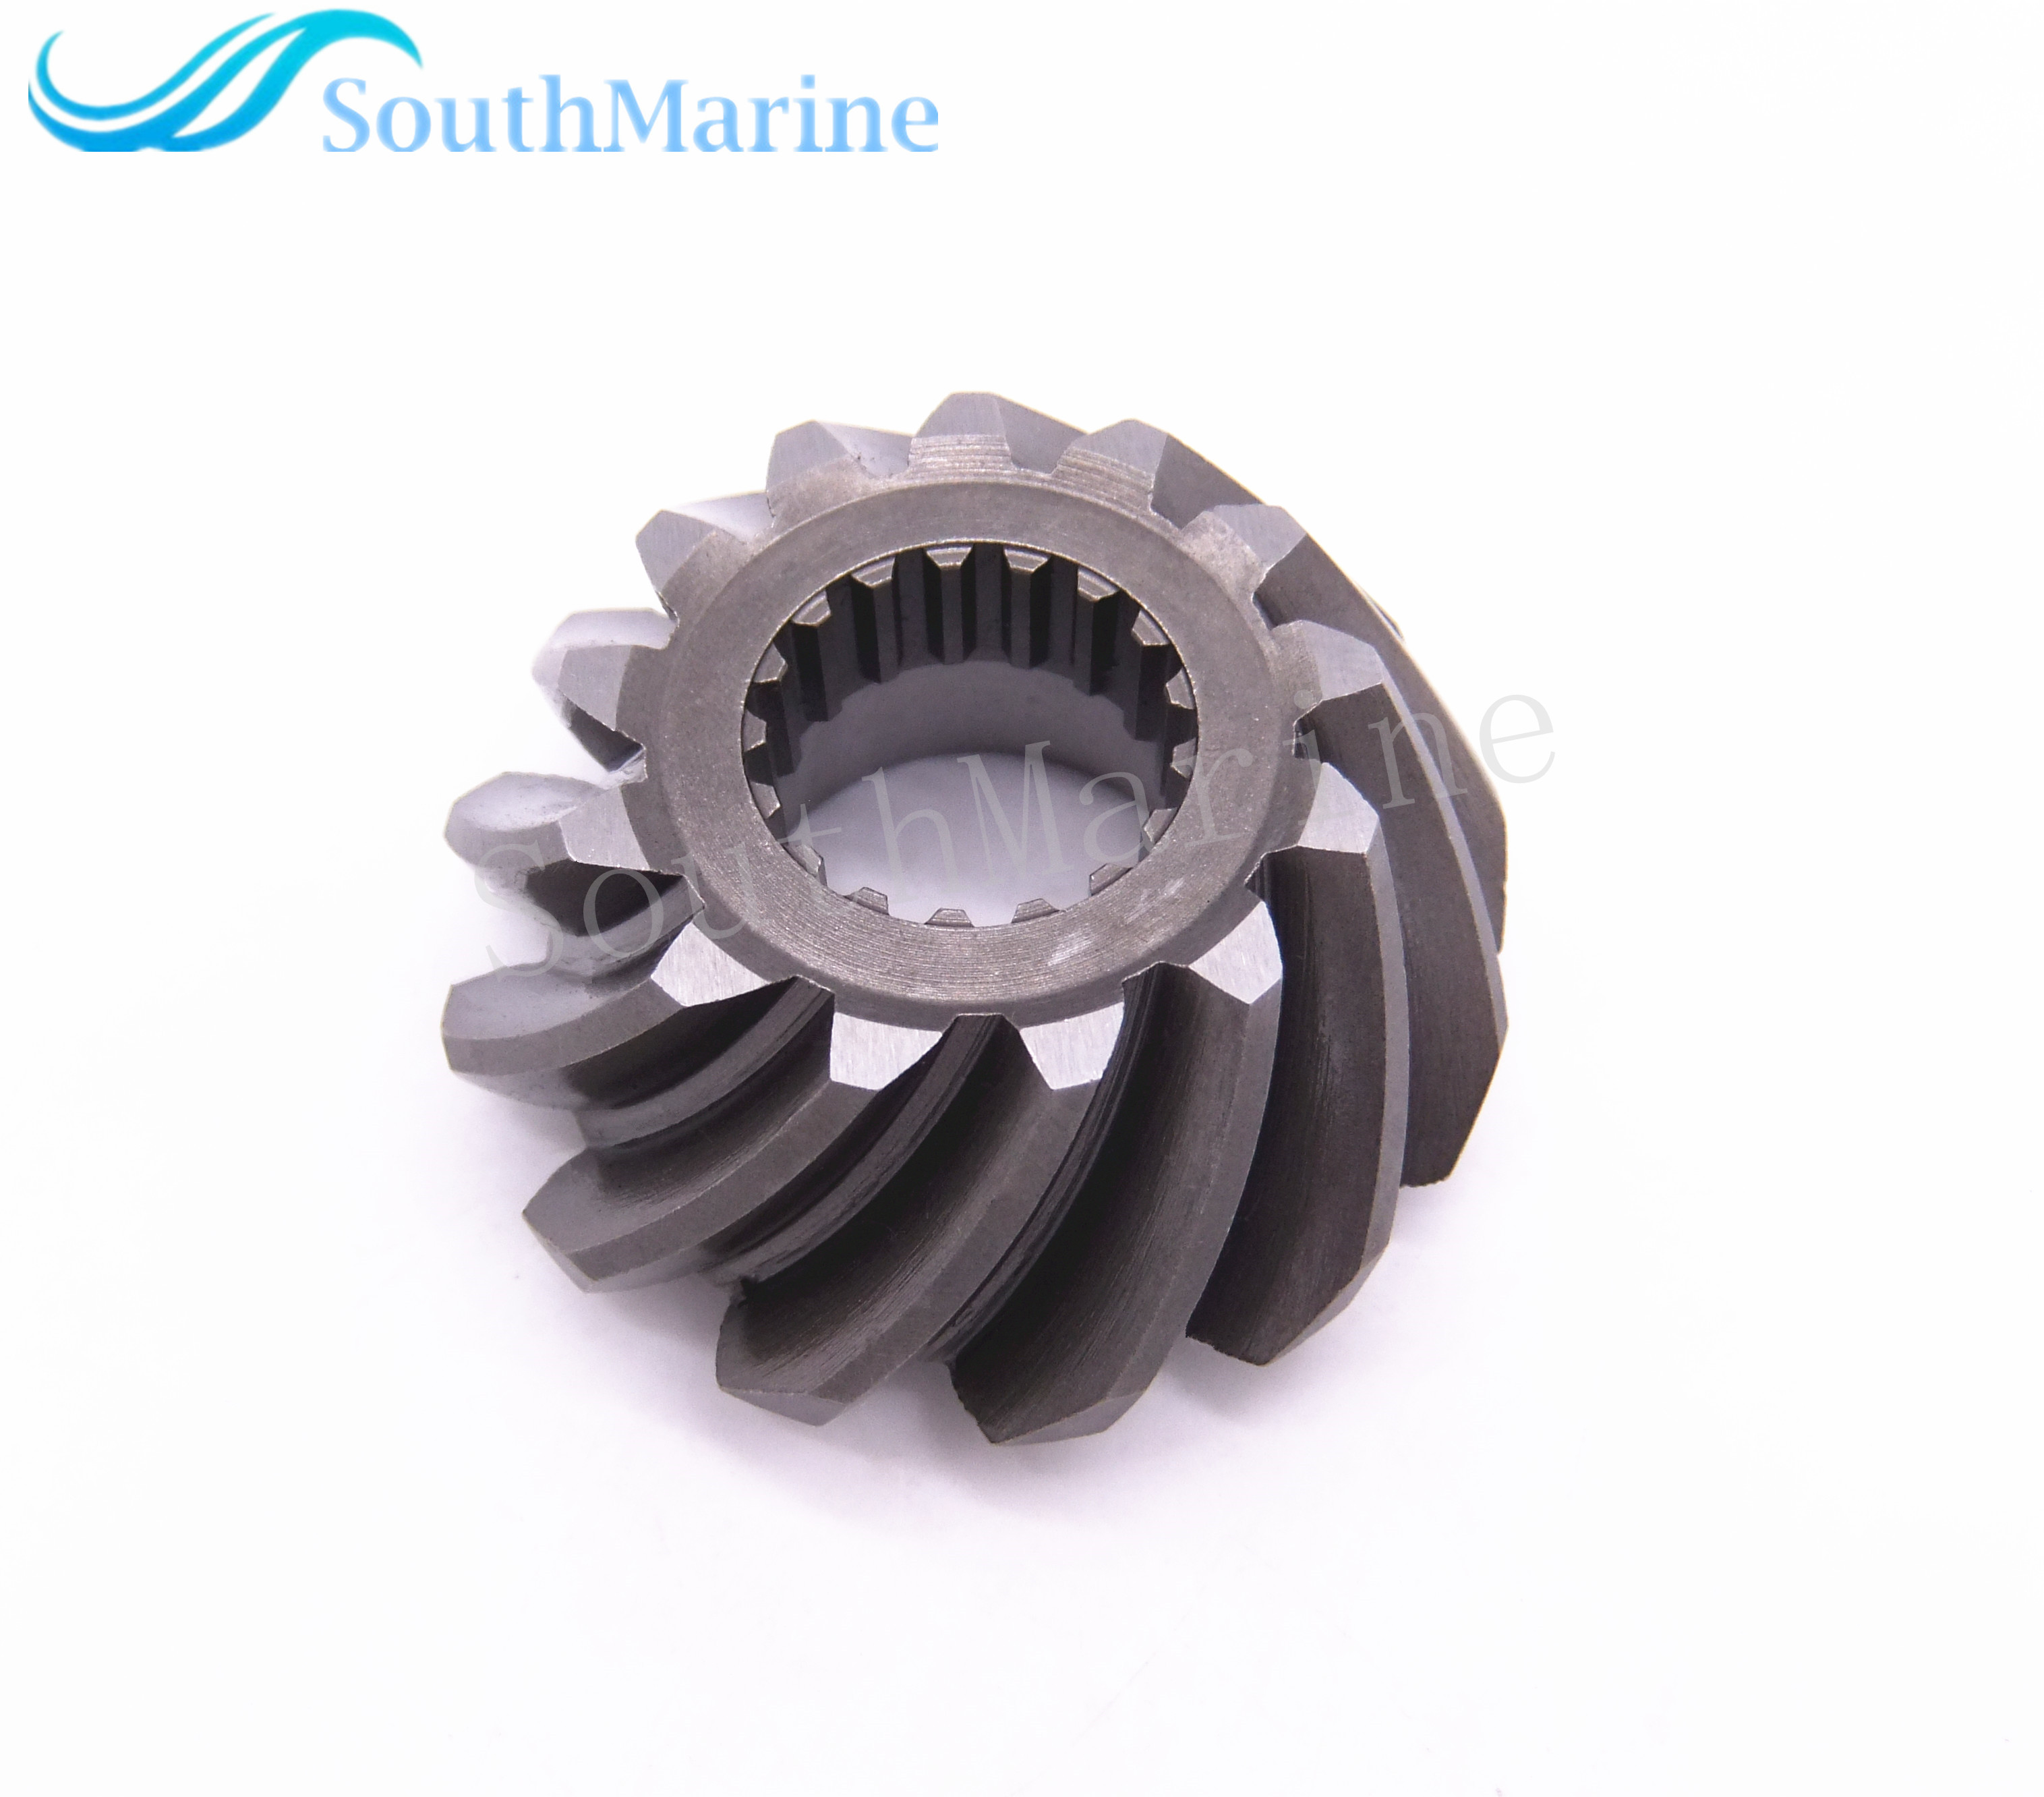 T85-04000605 Pinion Gear For Parsun Hdx Outboard Engine 2-stroke T75 T85 T90 Boat Motor Neither Too Hard Nor Too Soft Atv,rv,boat & Other Vehicle Automobiles & Motorcycles